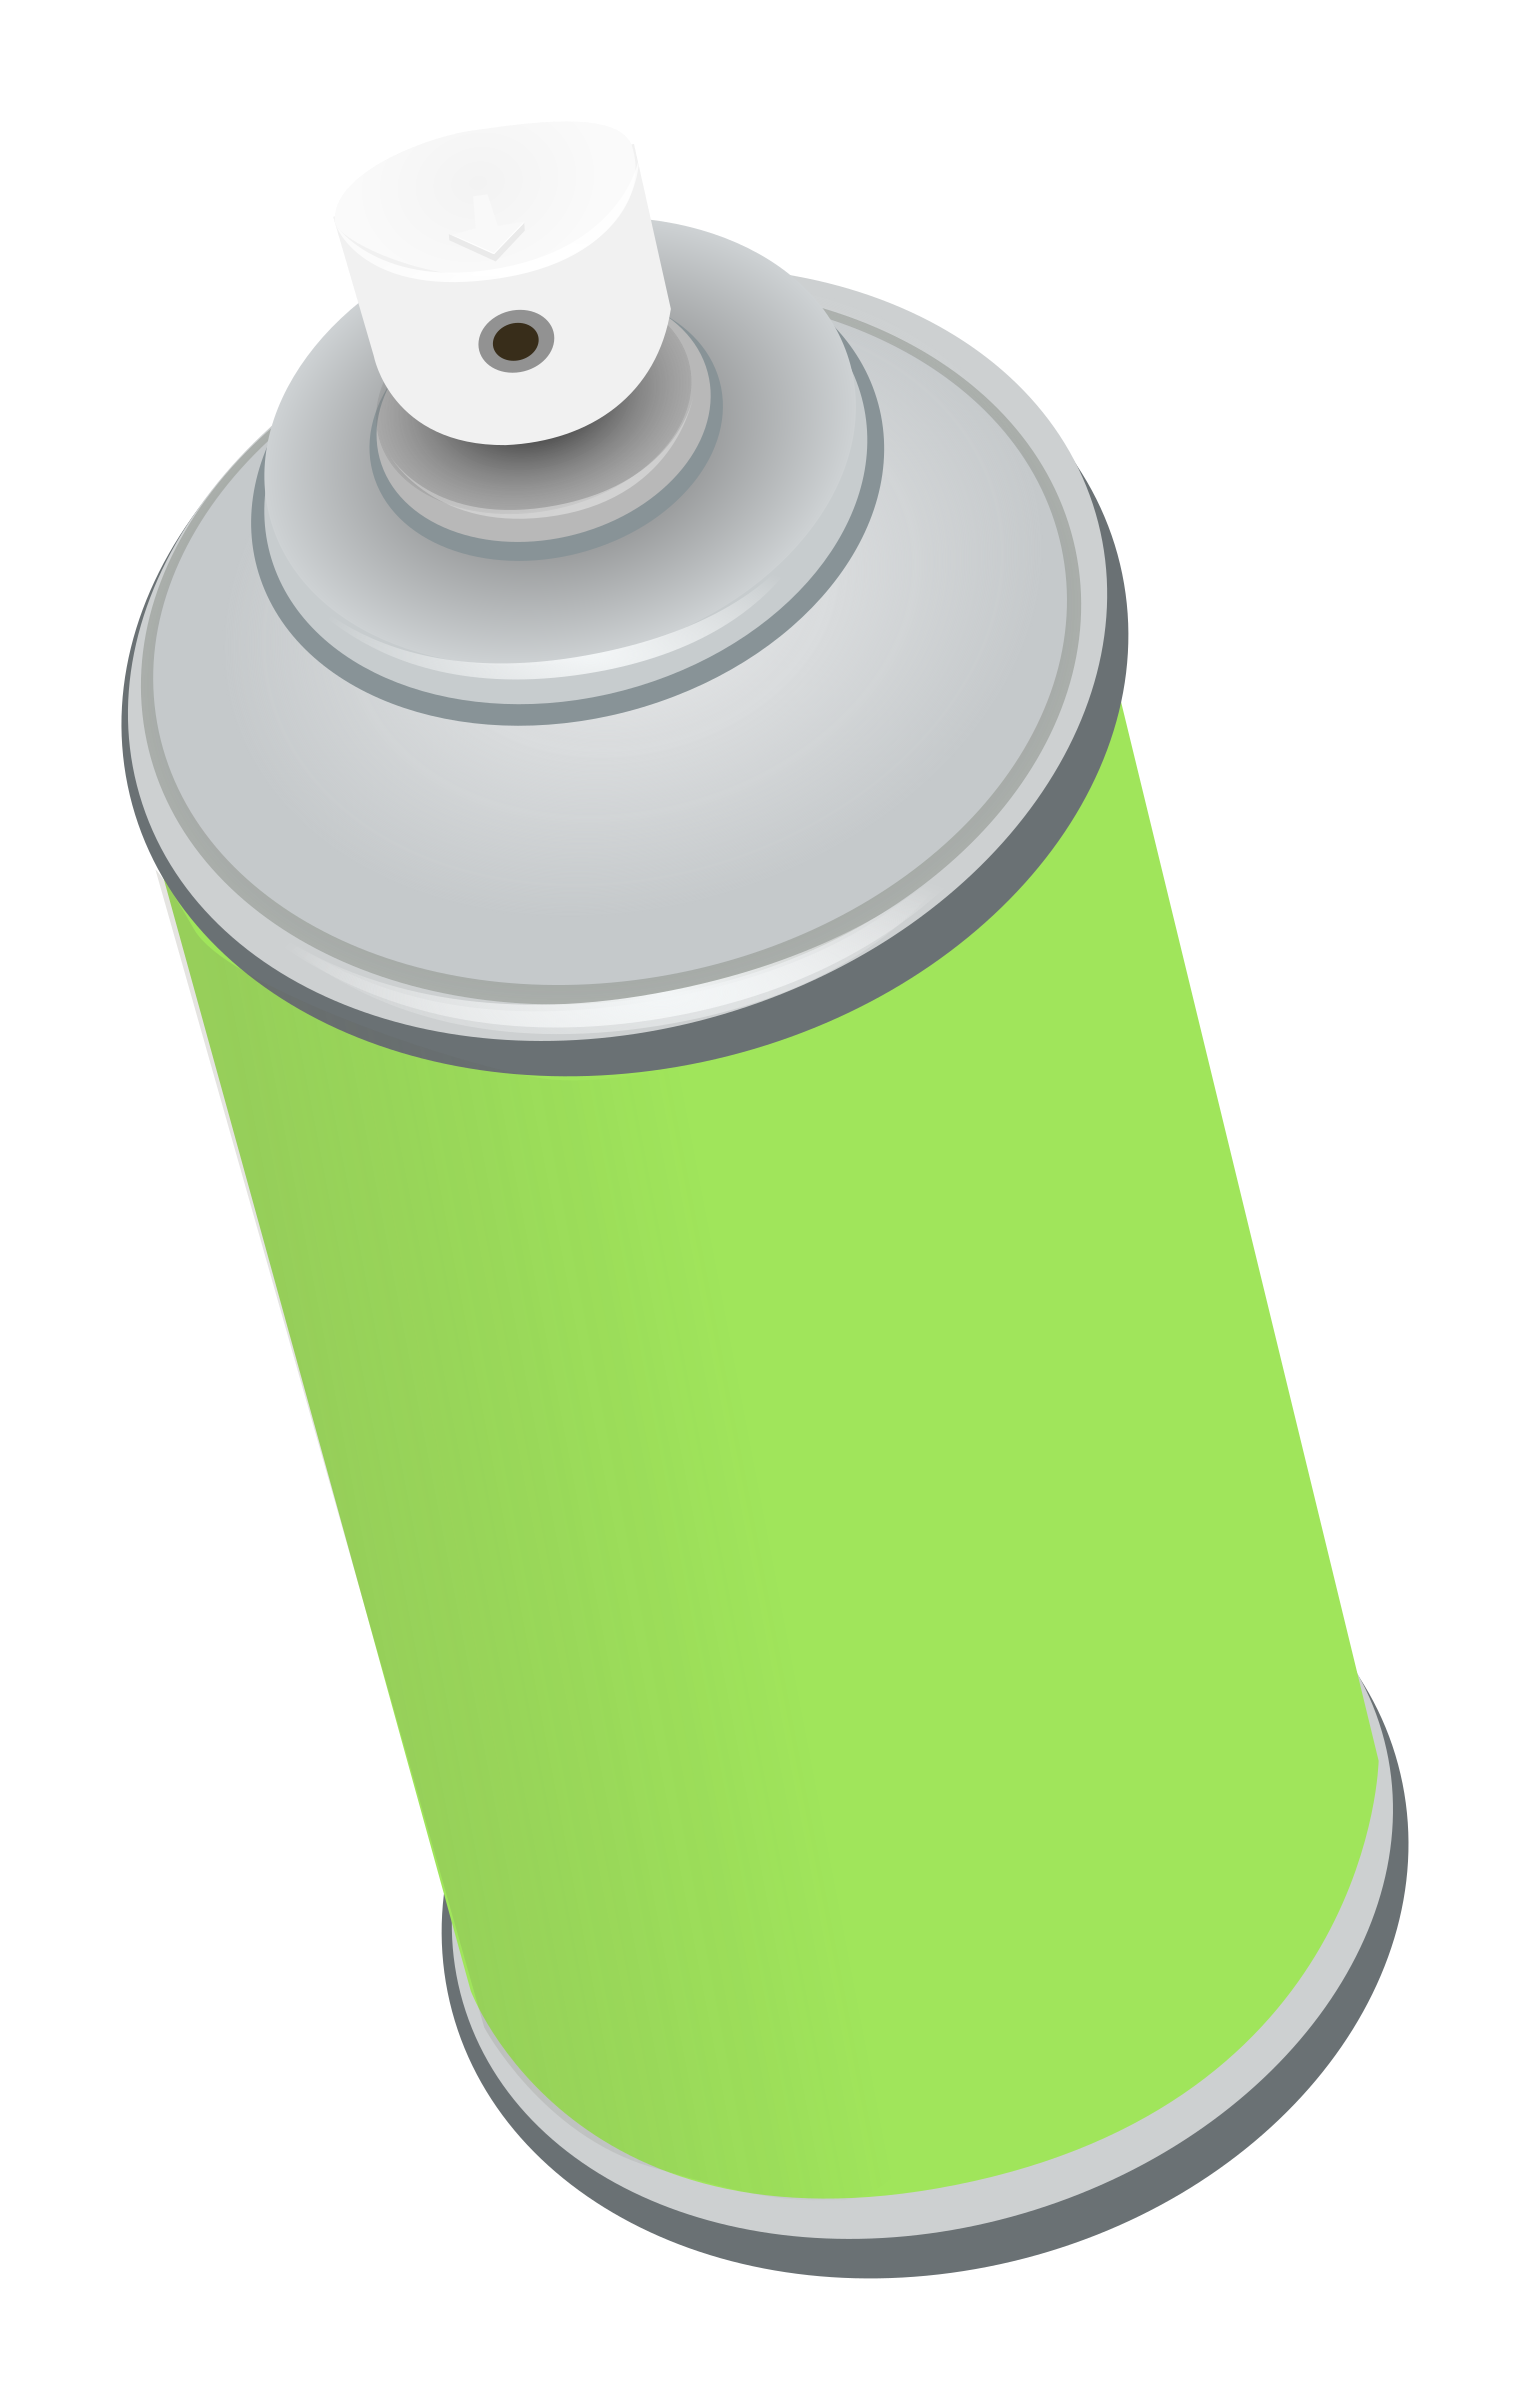 Spray clipart spray can. Free cliparts download clip